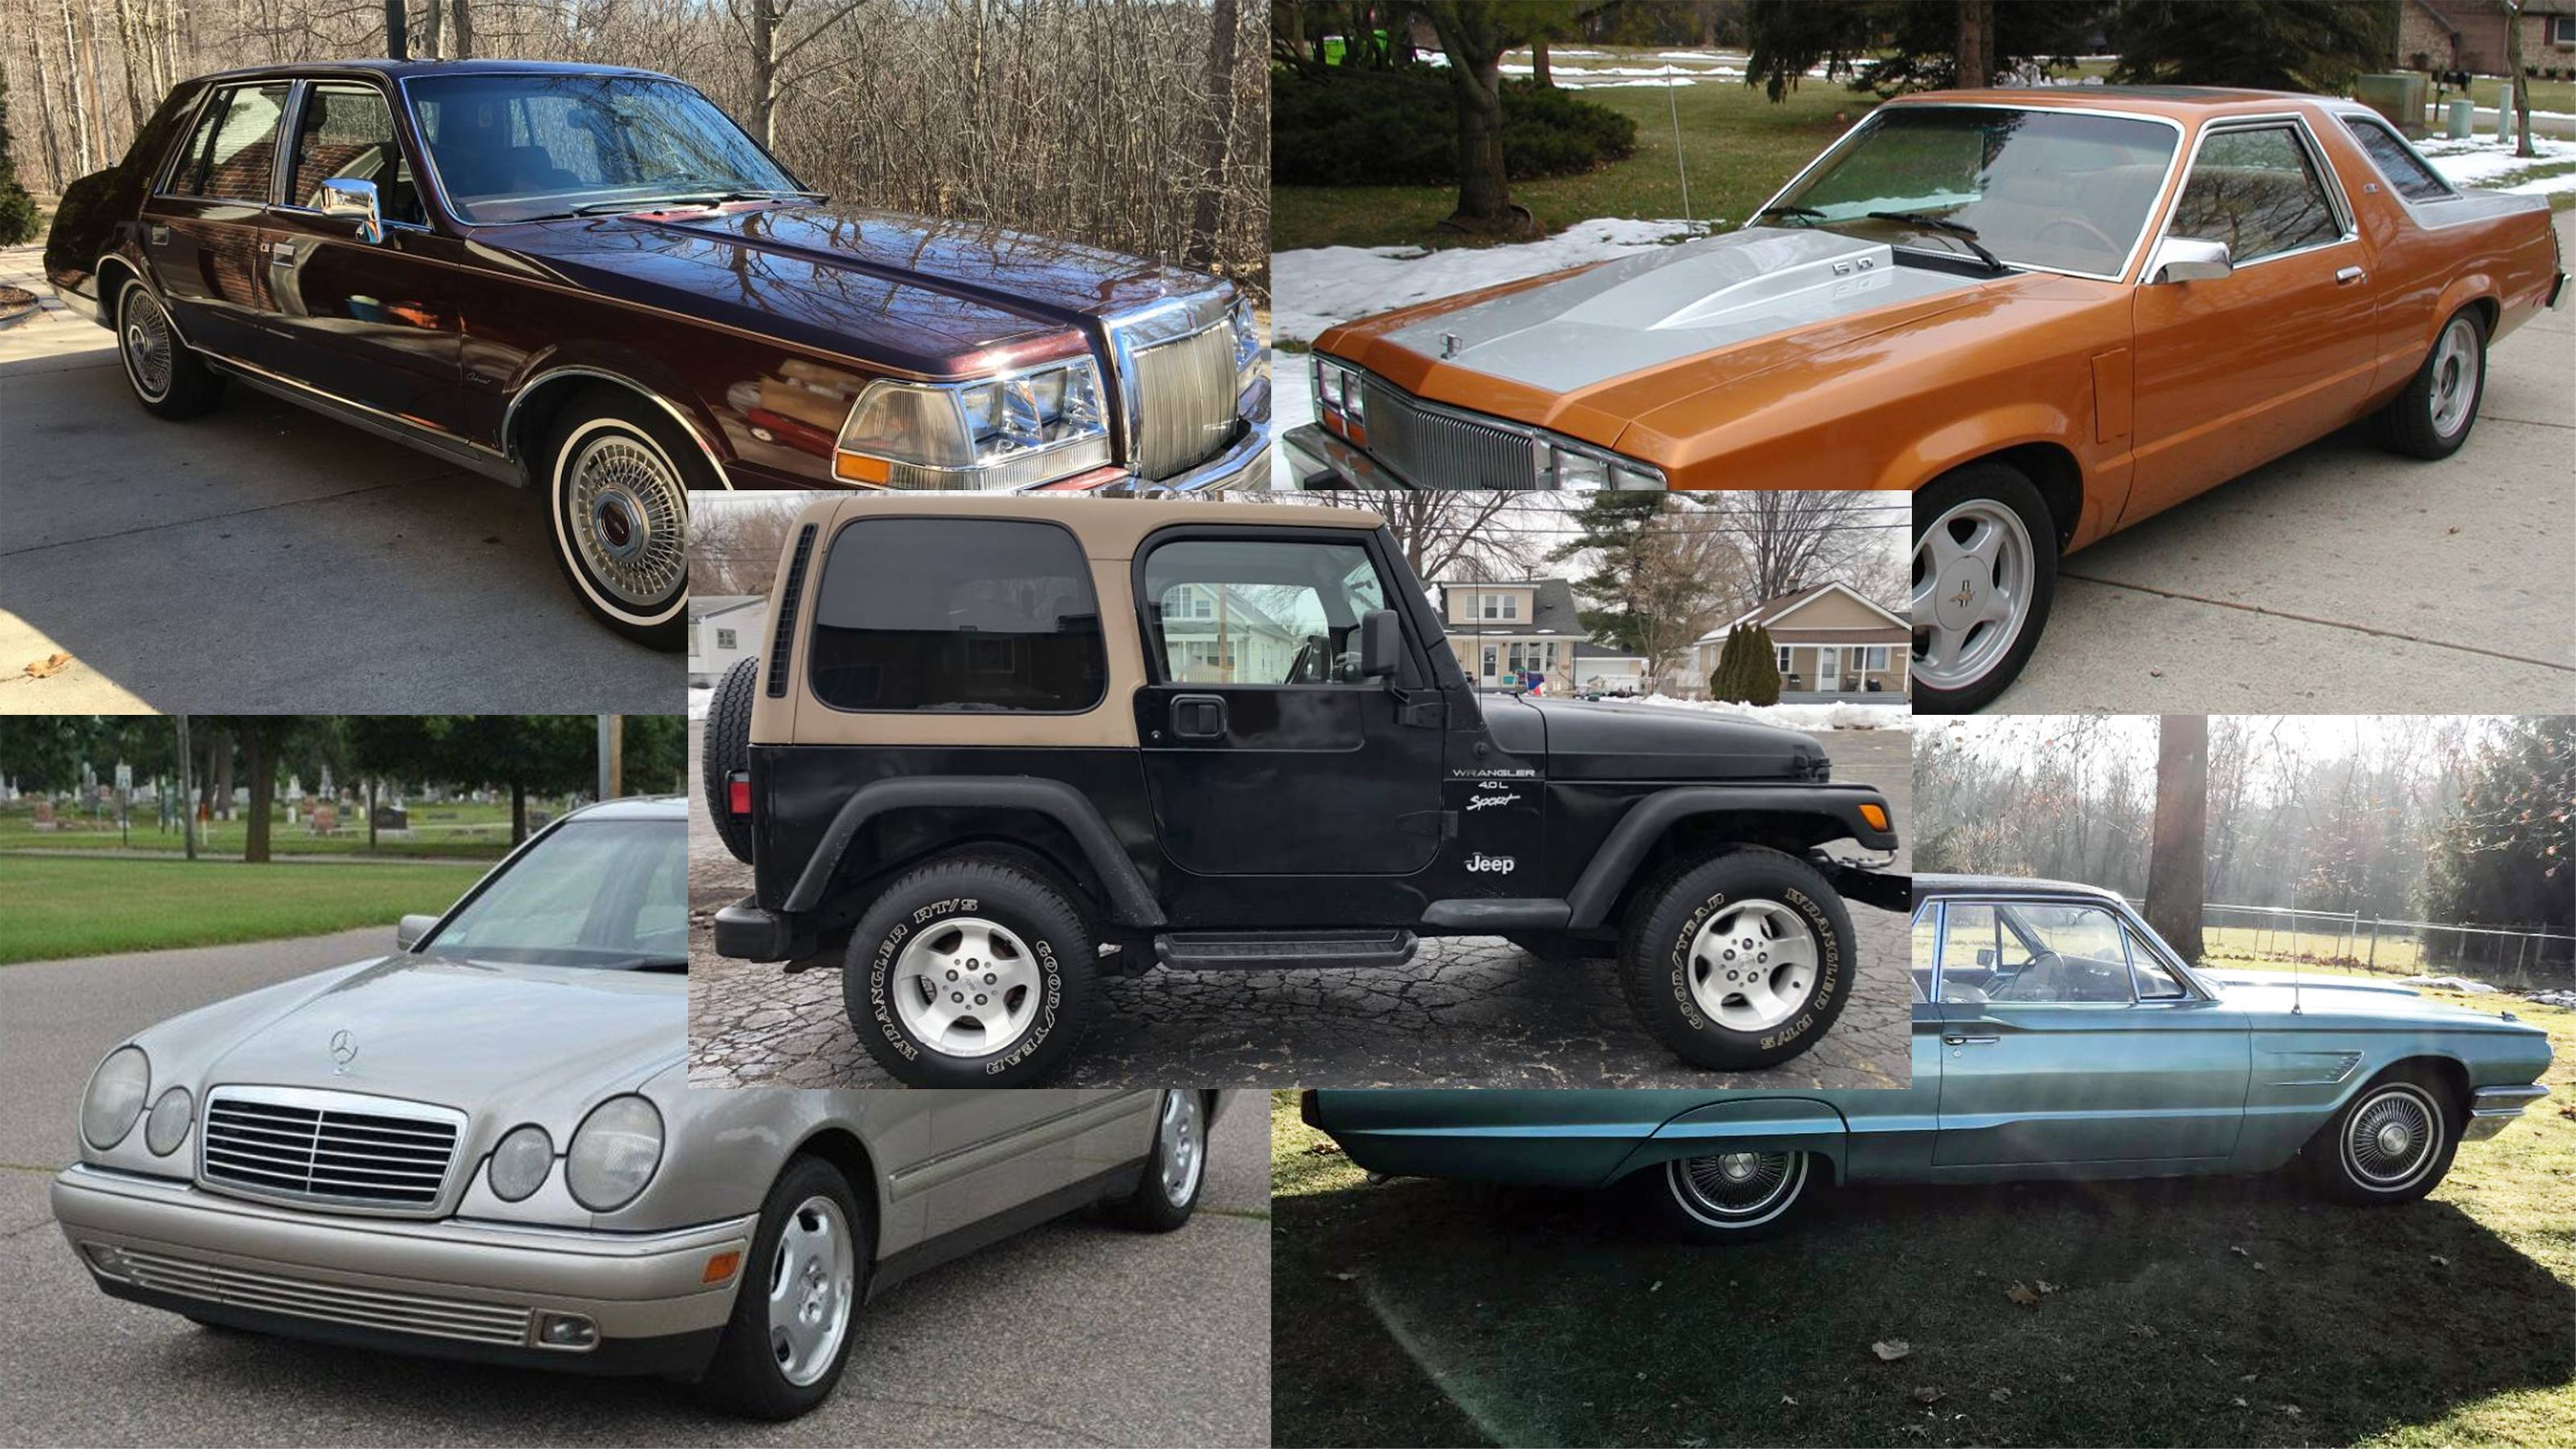 5 Craigslist Cars Under 10k To Buy This Month